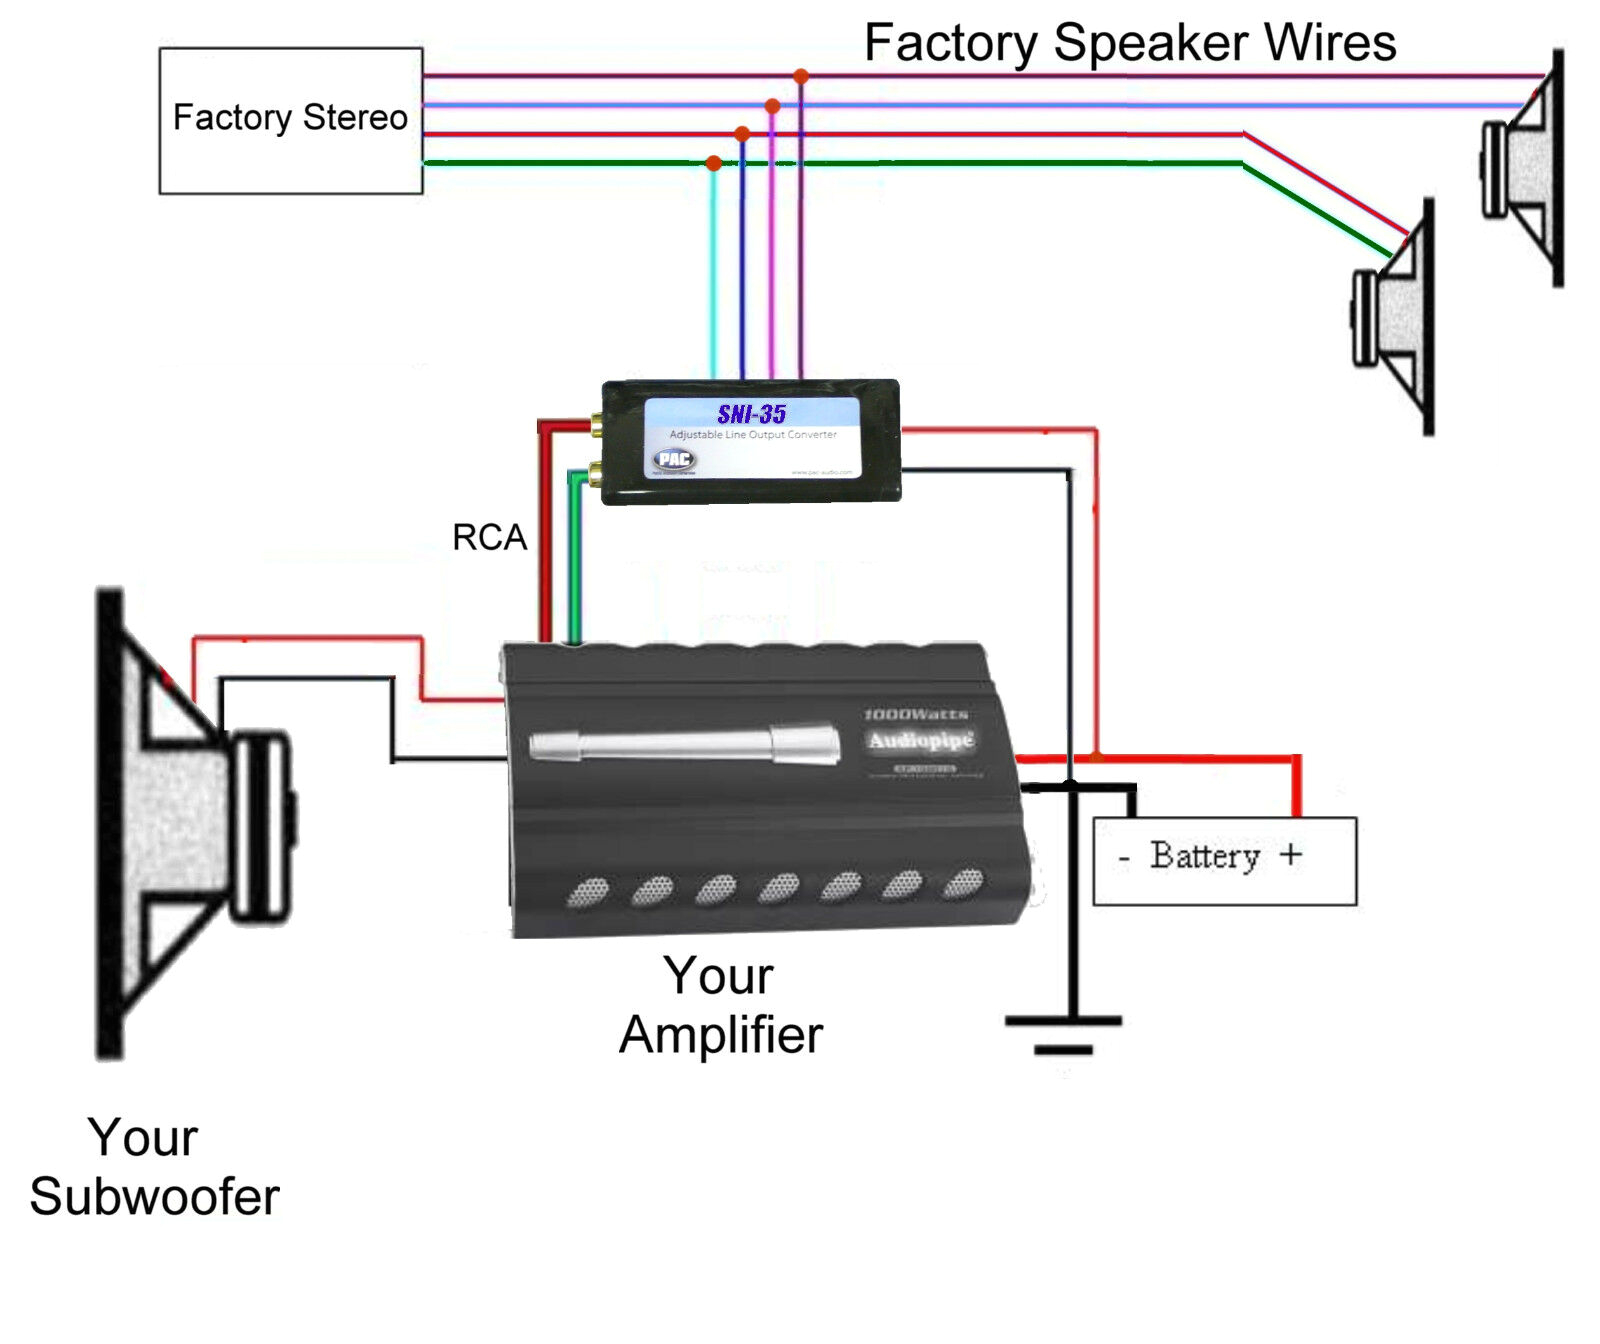 pac rca converter wiring diagram another blog about wiring diagram pac sni 15 wiring diagram pac sni 15 wiring diagram